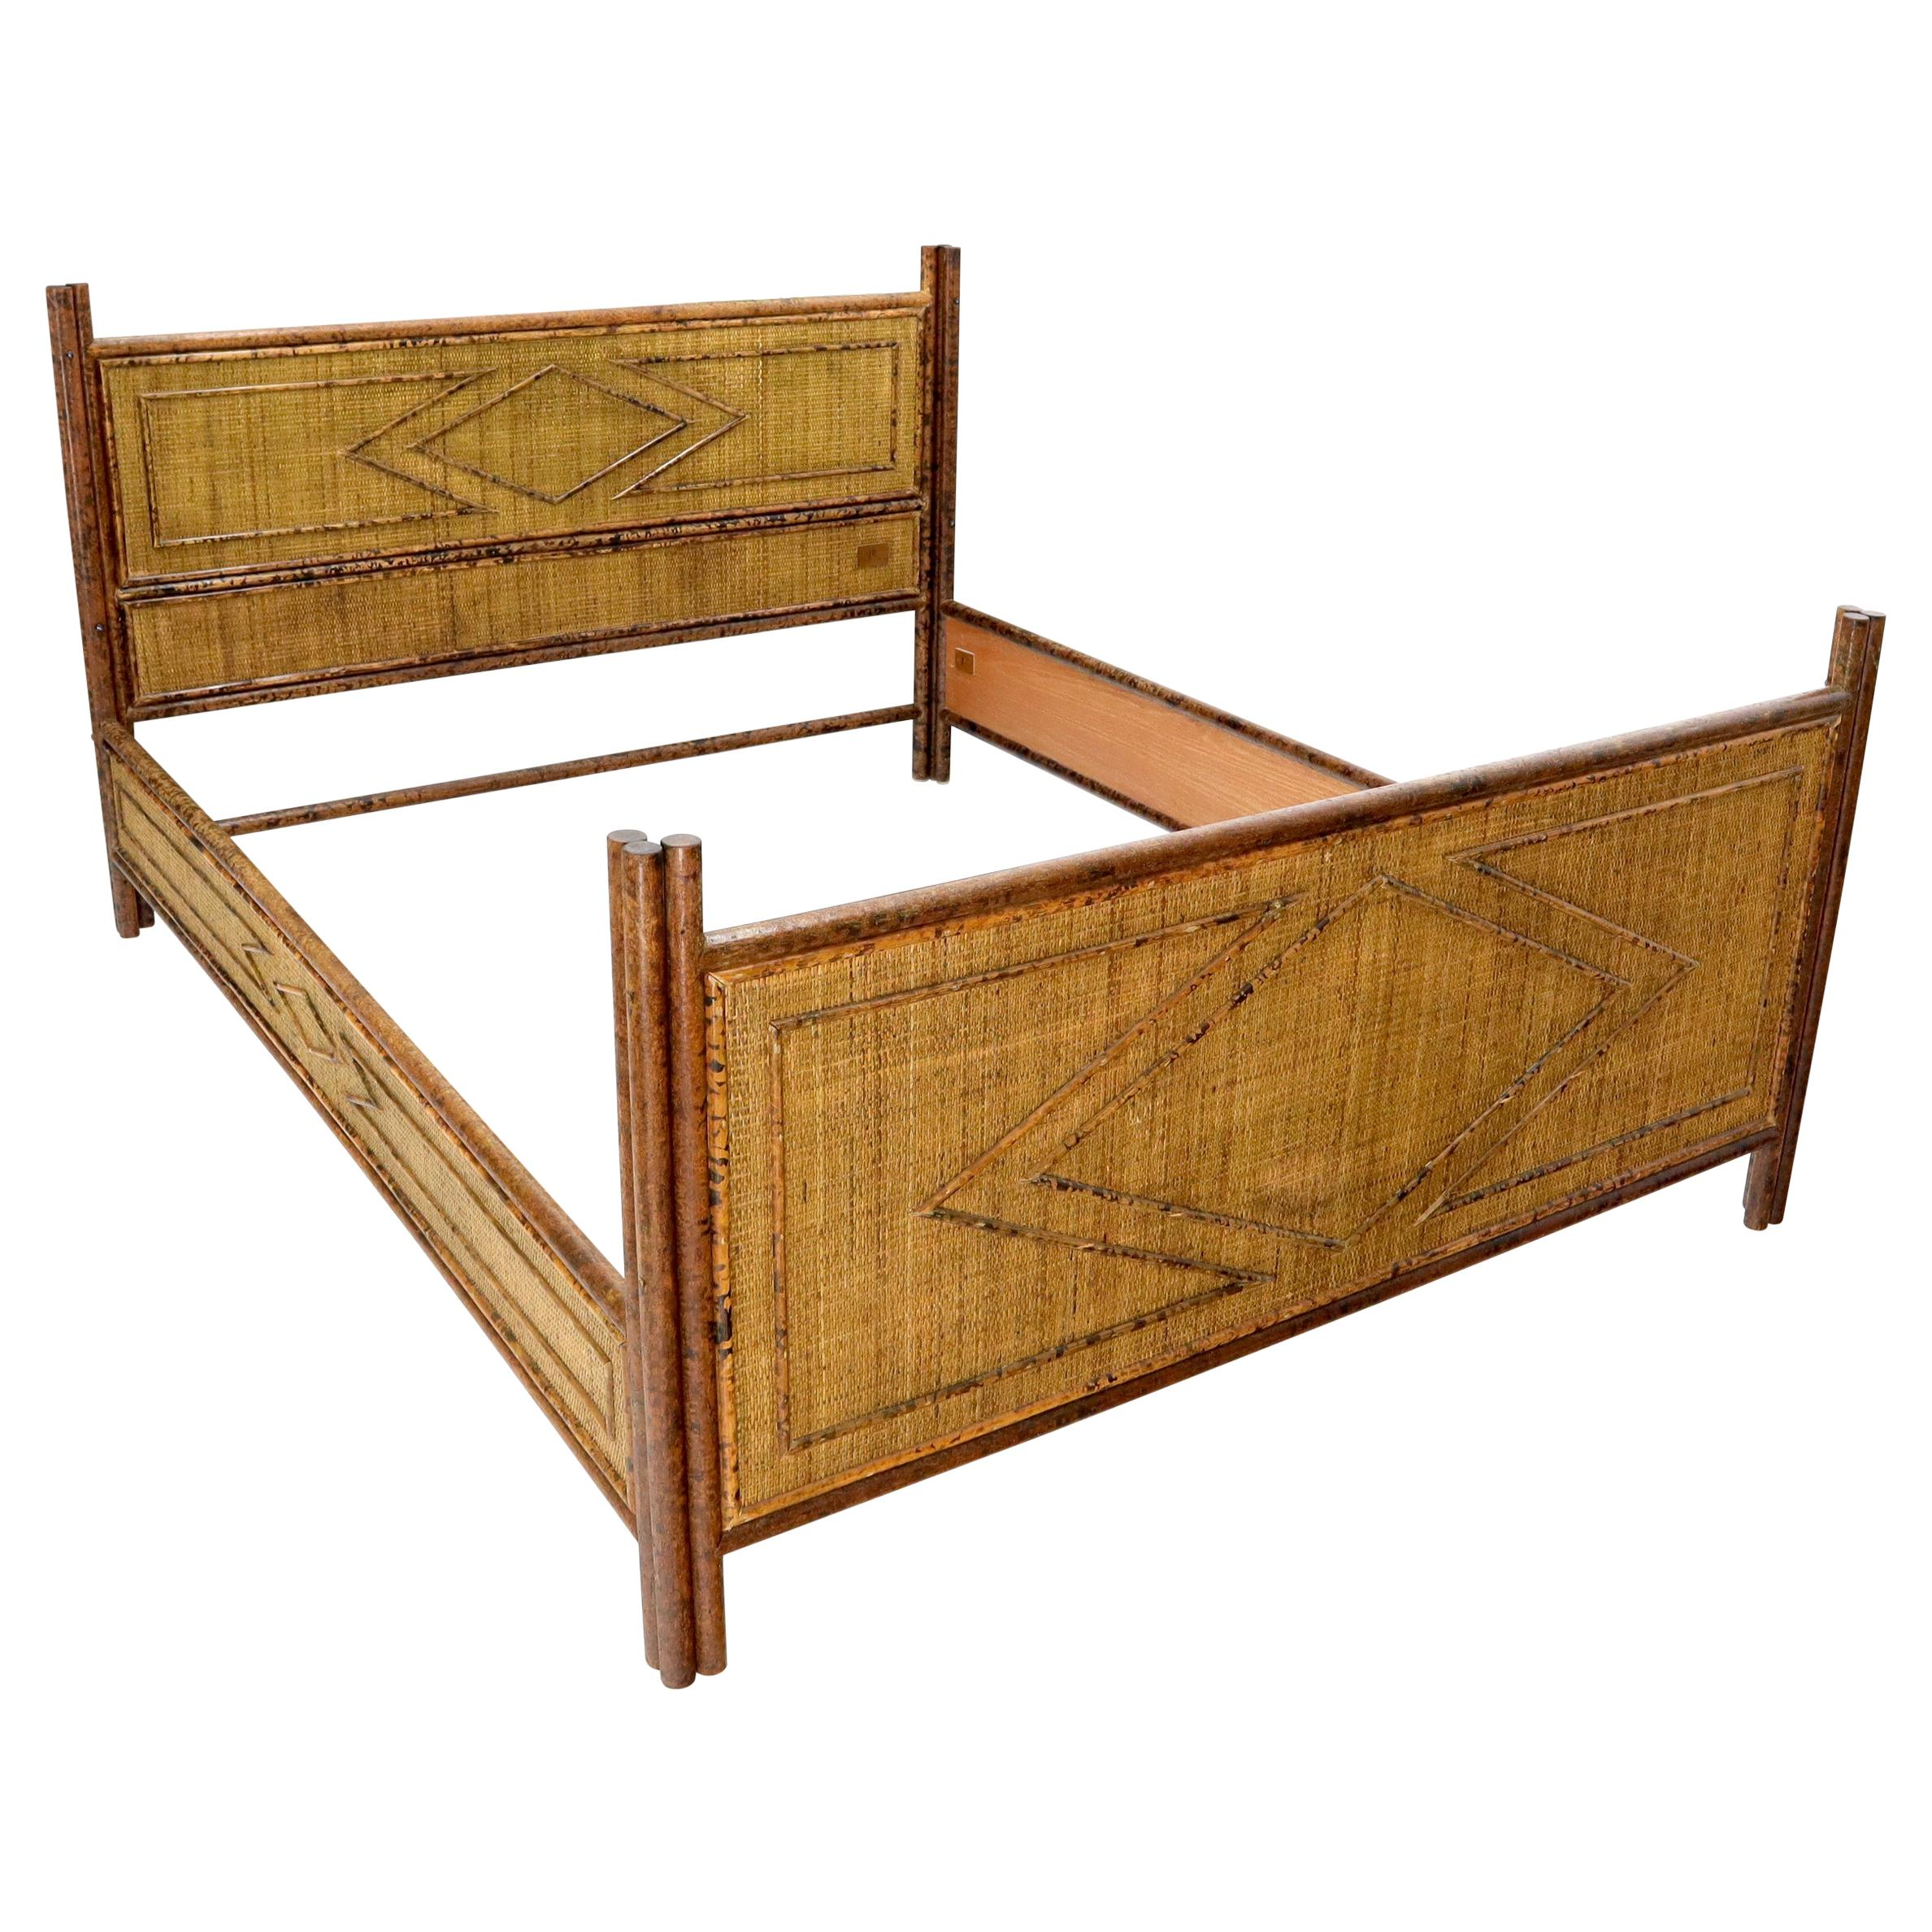 Fabulous Burnt Bamboo and Rattan Queen Size Bed Headboard Rails